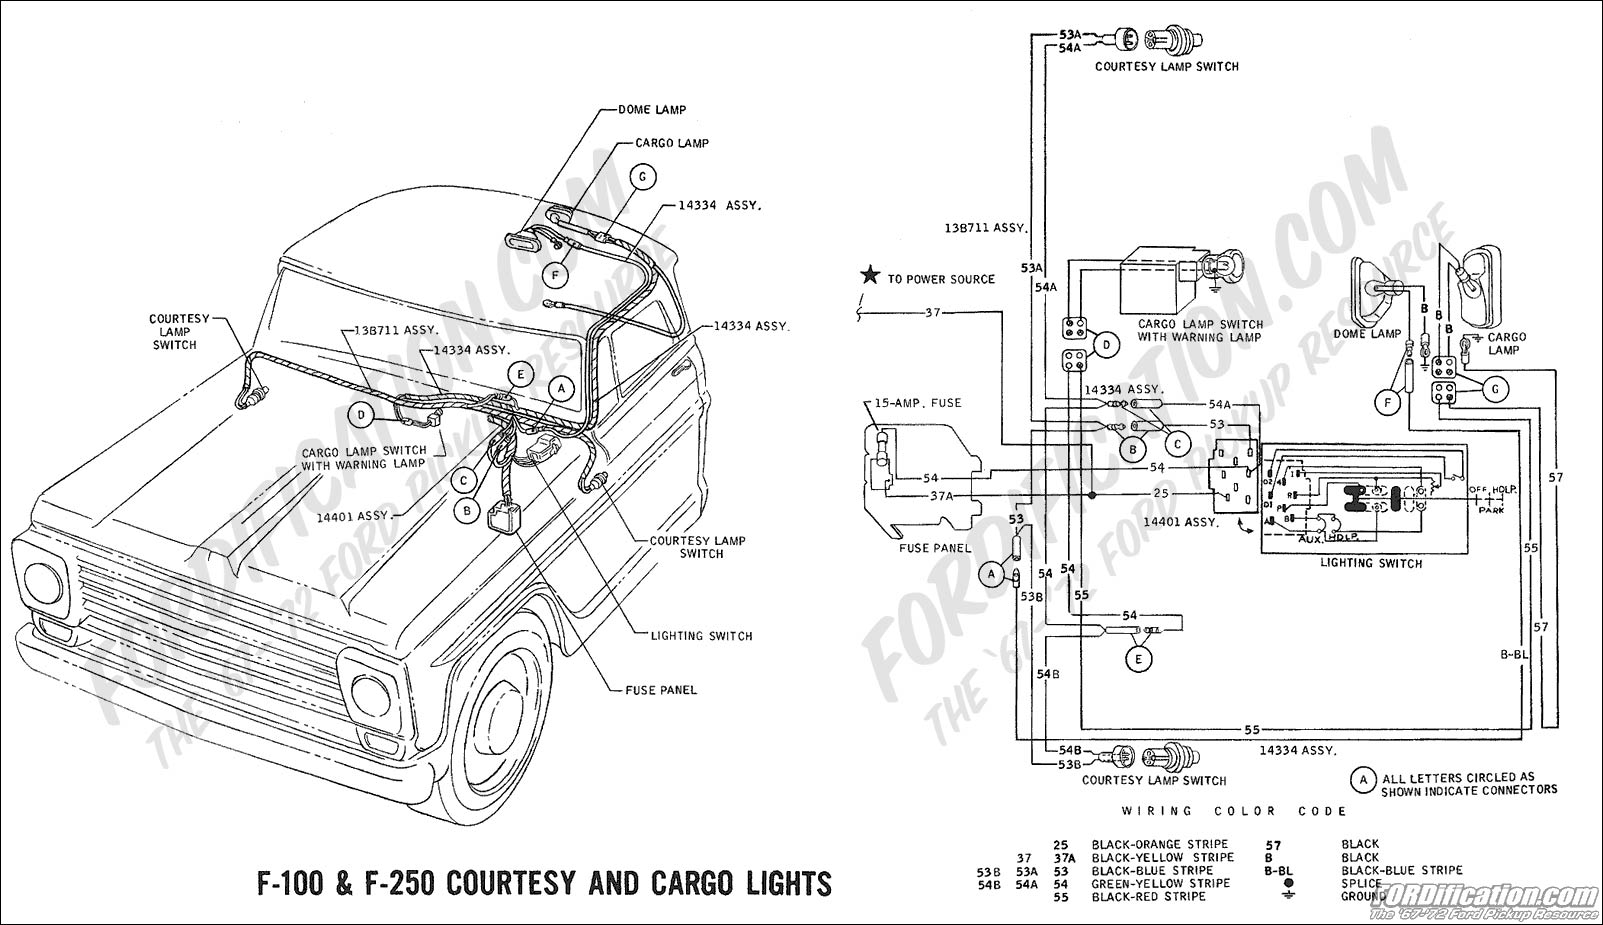 1973 Ford F 250 Ignition Switch Wiring Diagram Start Building A Mustang 1971 F100 Schematic Rh Macro Program Com 1966 Dodge Charger